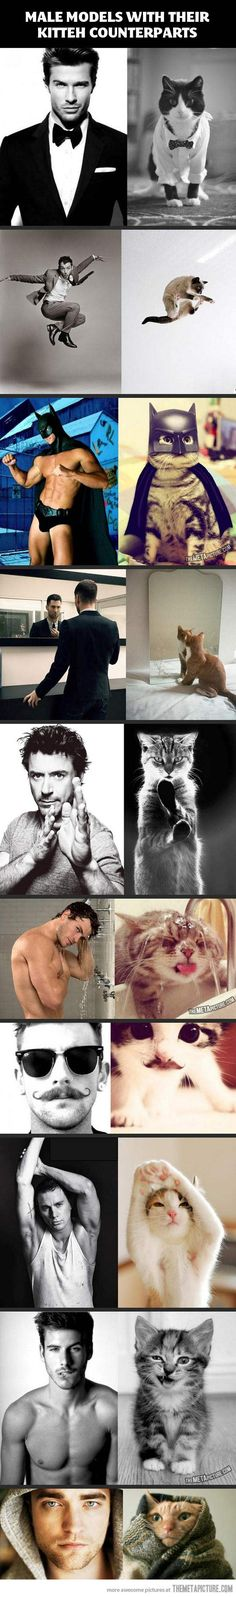 Male models vs. kittens…